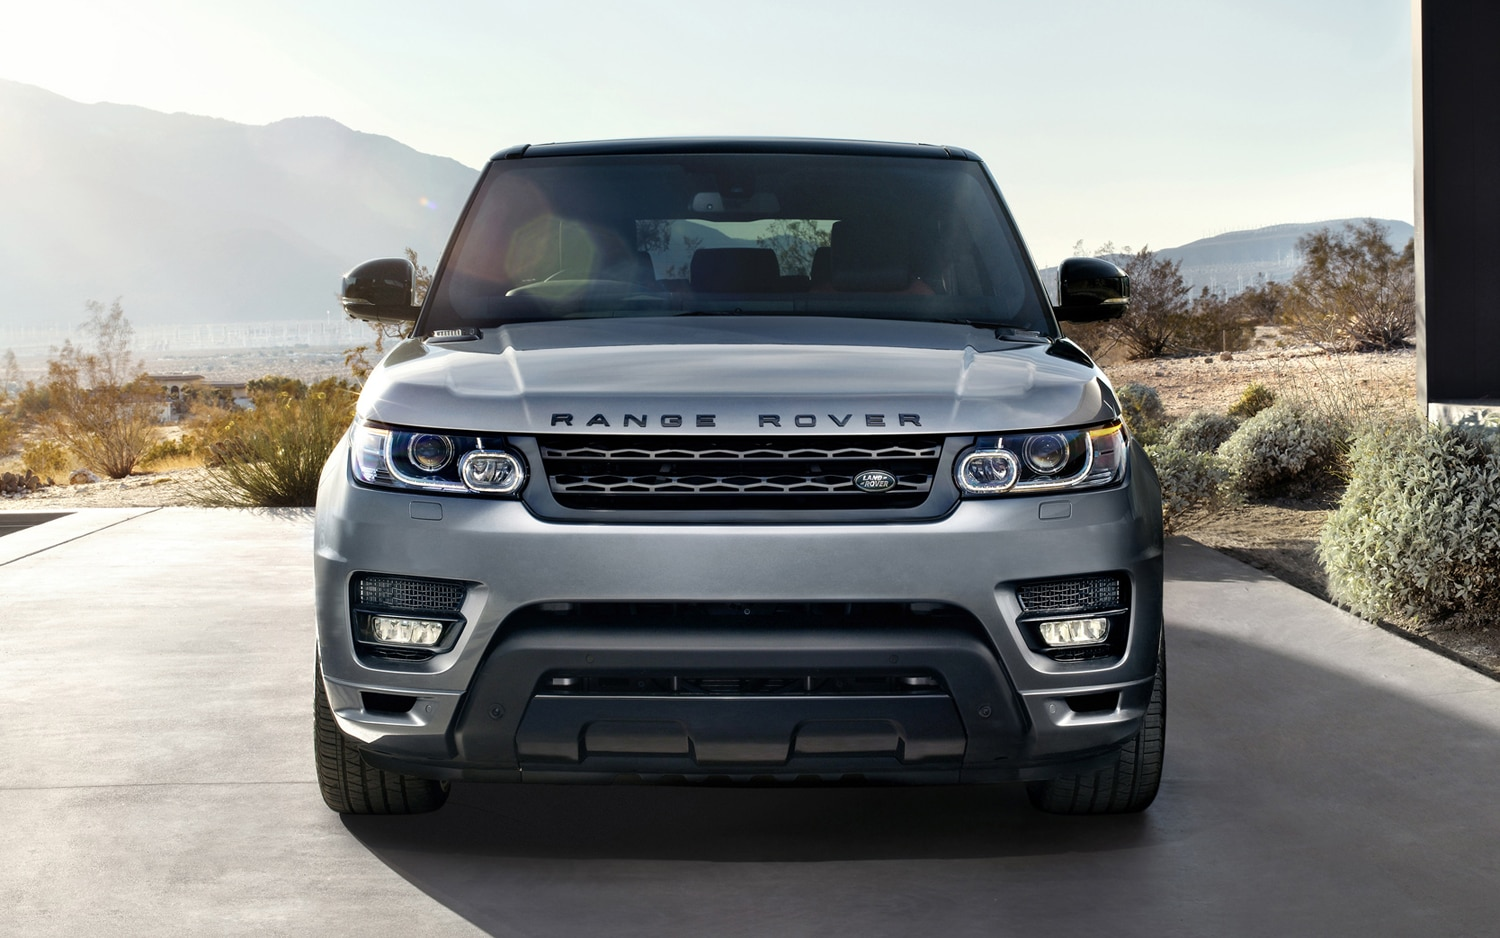 2014 land rover range rover sport first look automobile magazine. Black Bedroom Furniture Sets. Home Design Ideas